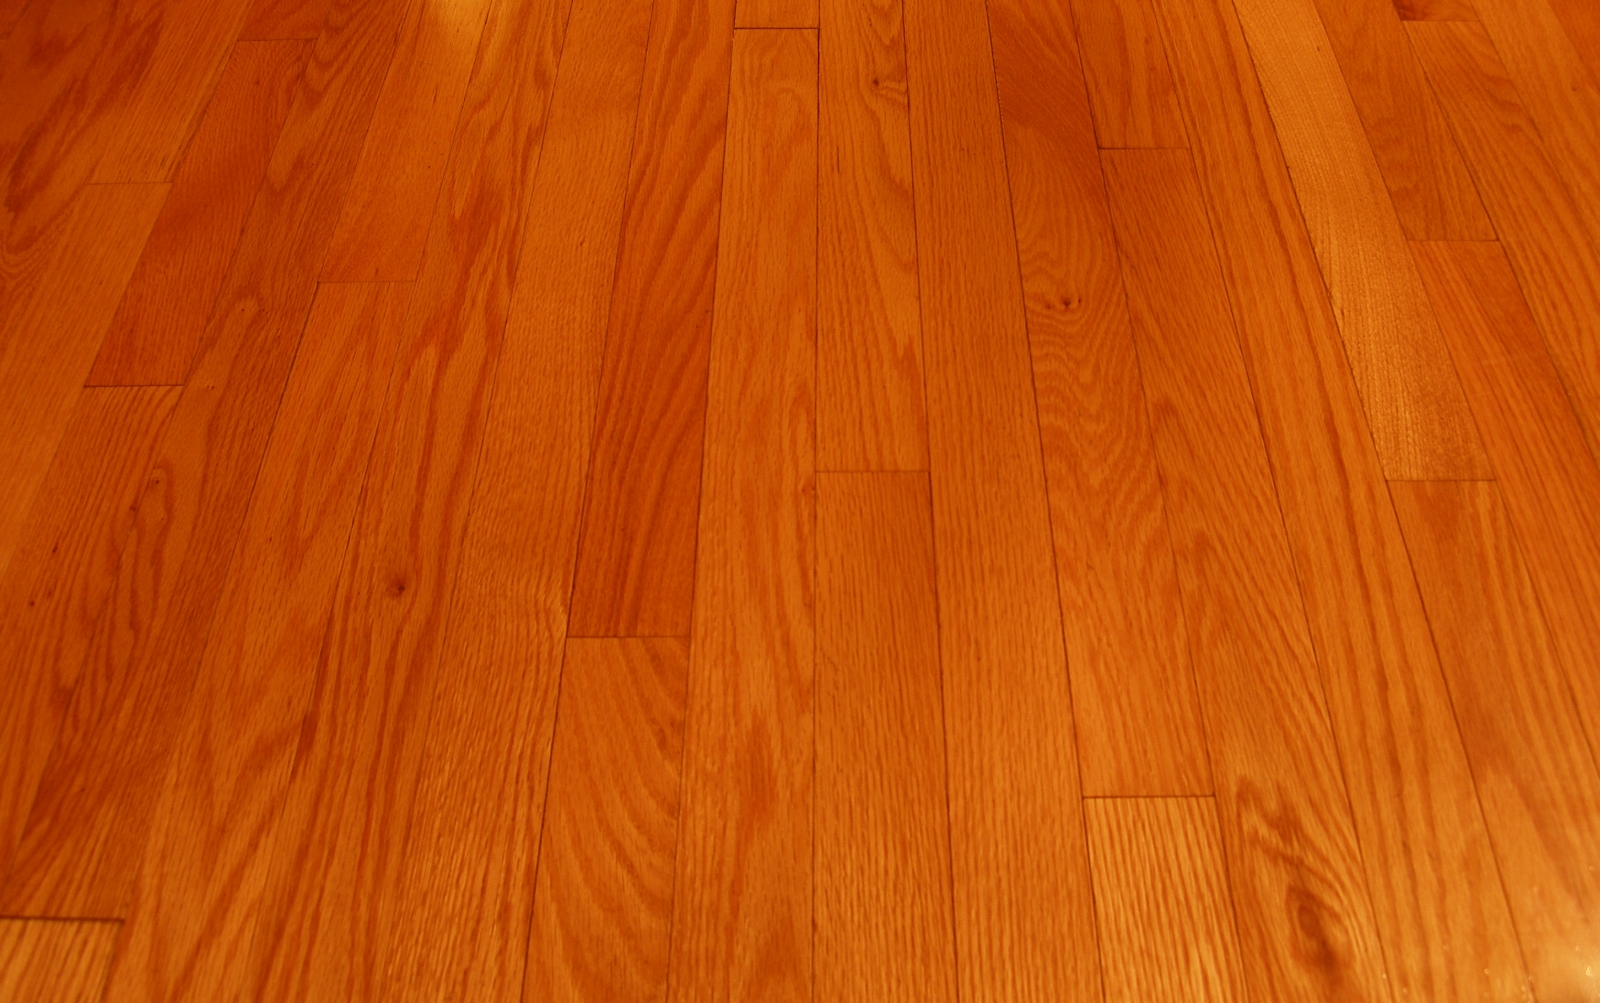 Hardwood flooring hard wood floors wood flooring at ask for Real wood flooring